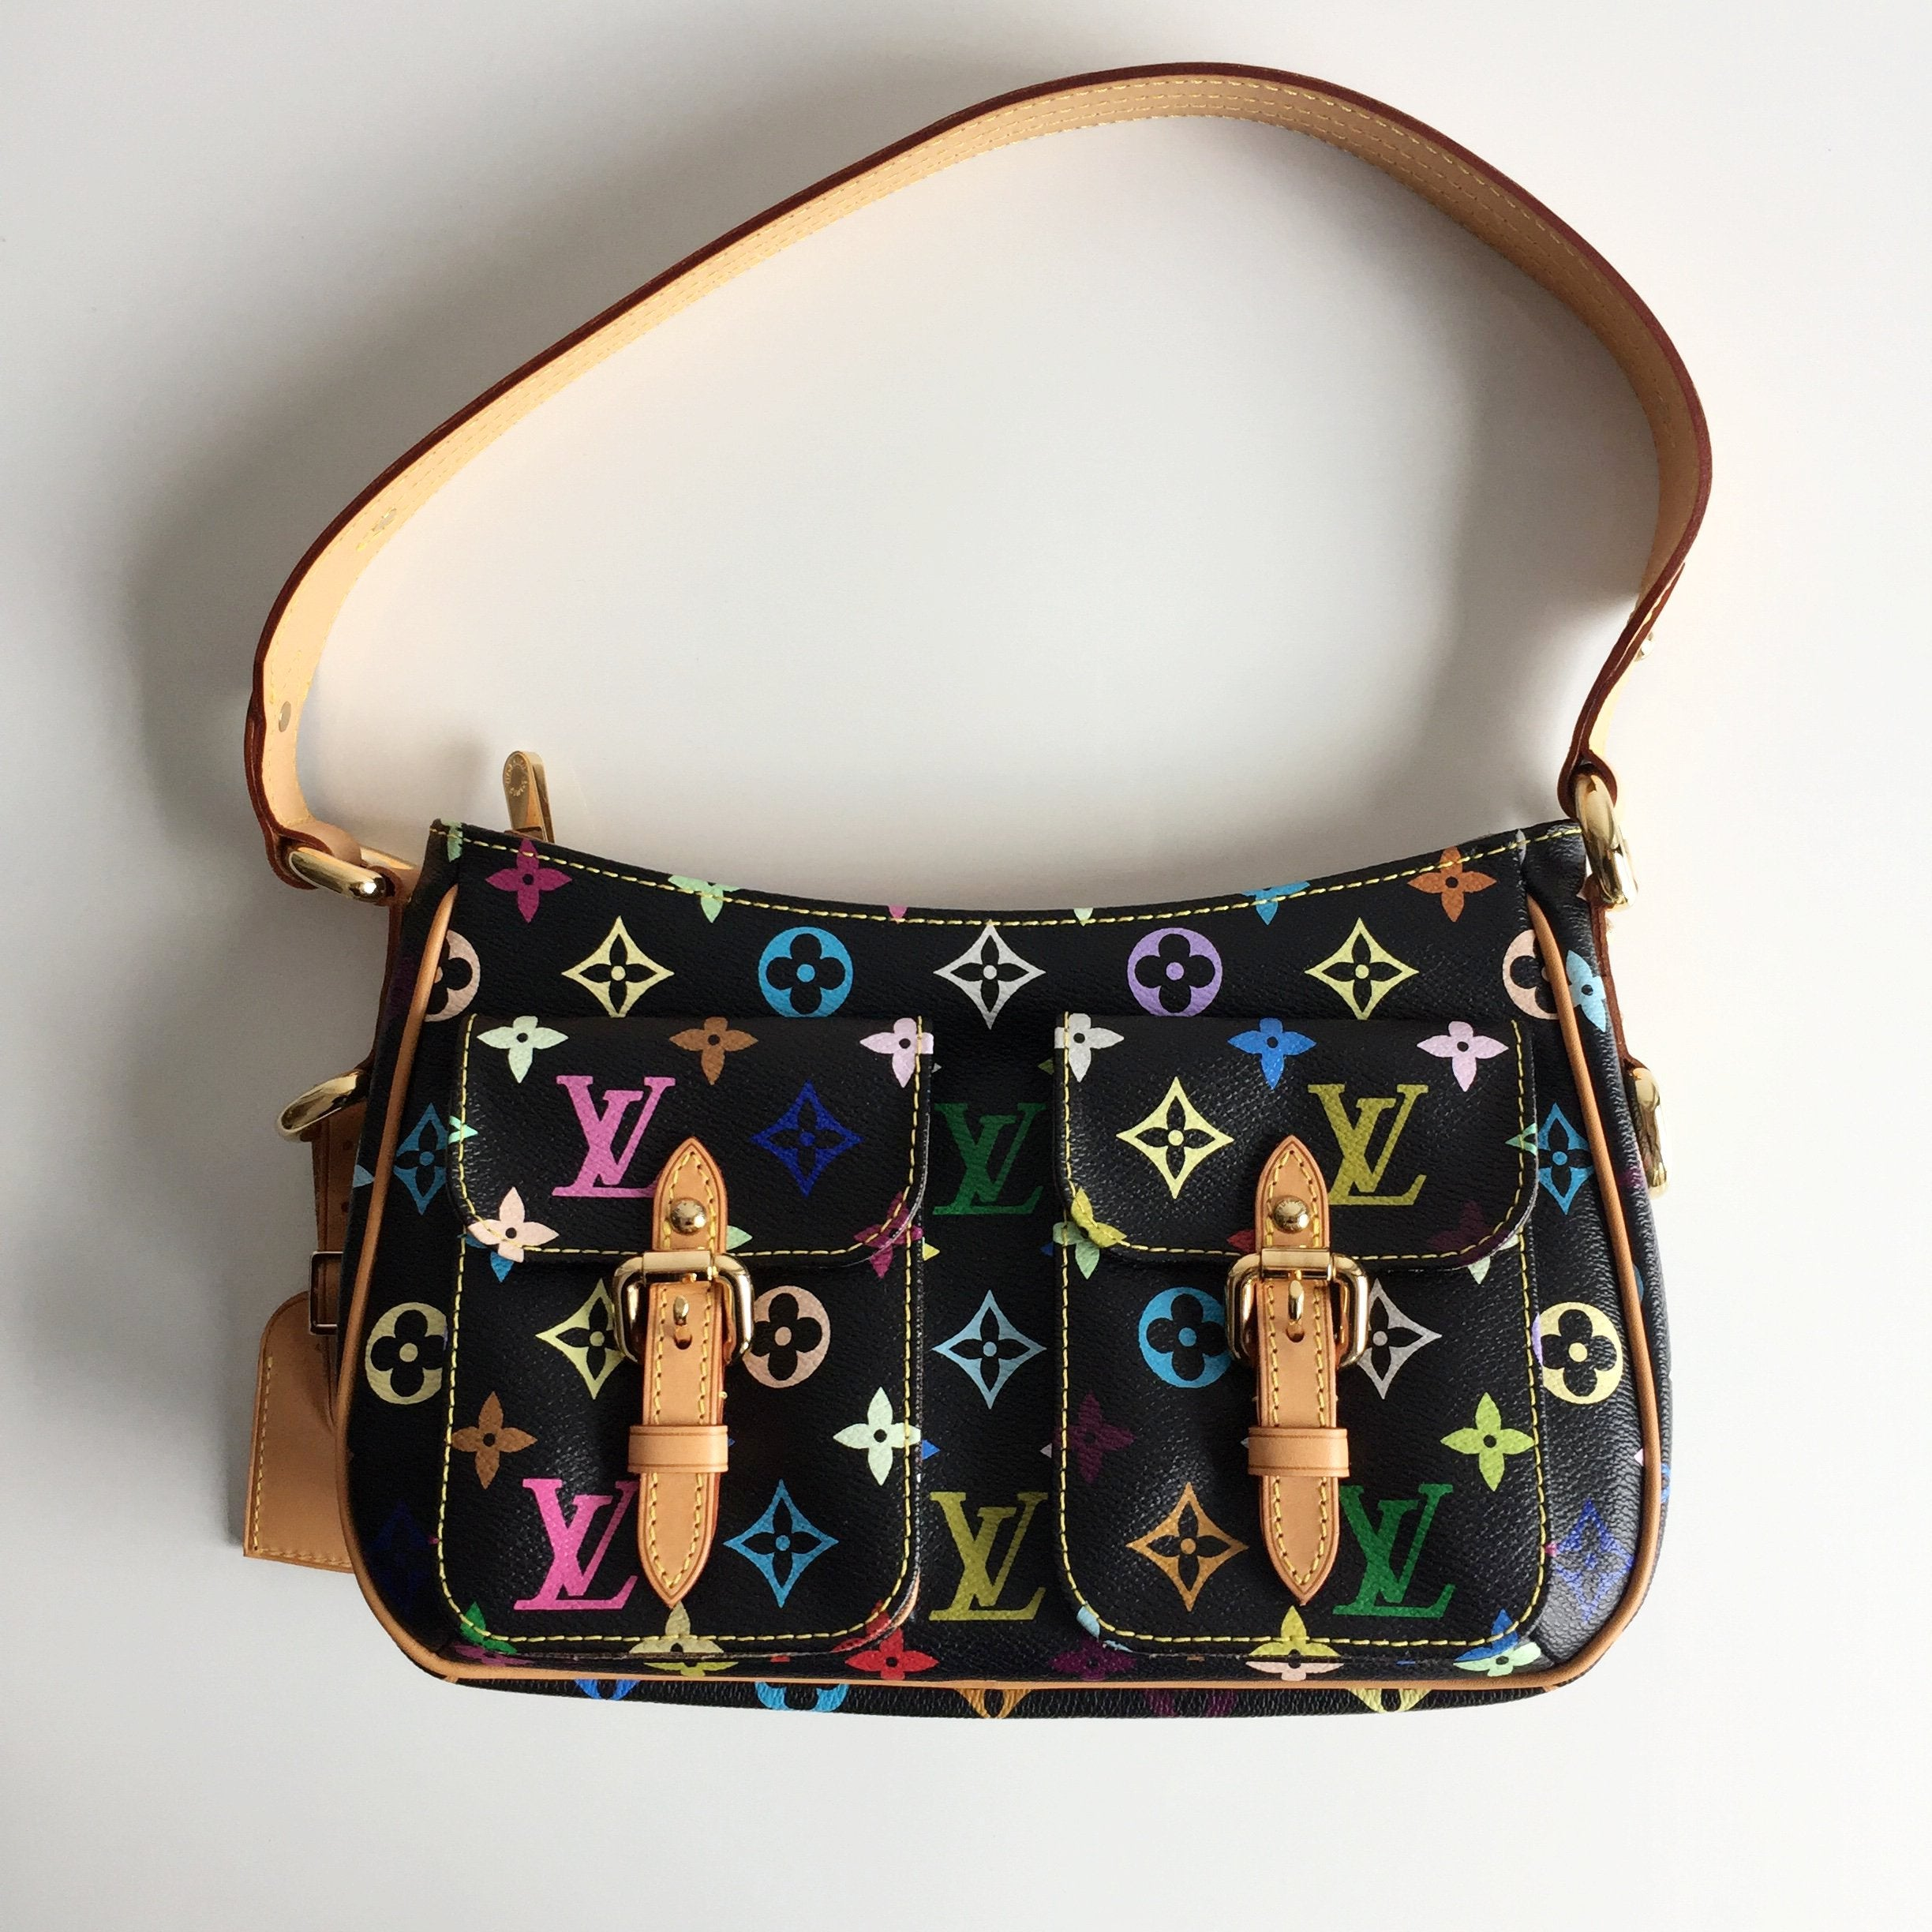 Authentic LOUIS VUITTON Multicolor Lodge PM Black Grenade Bag